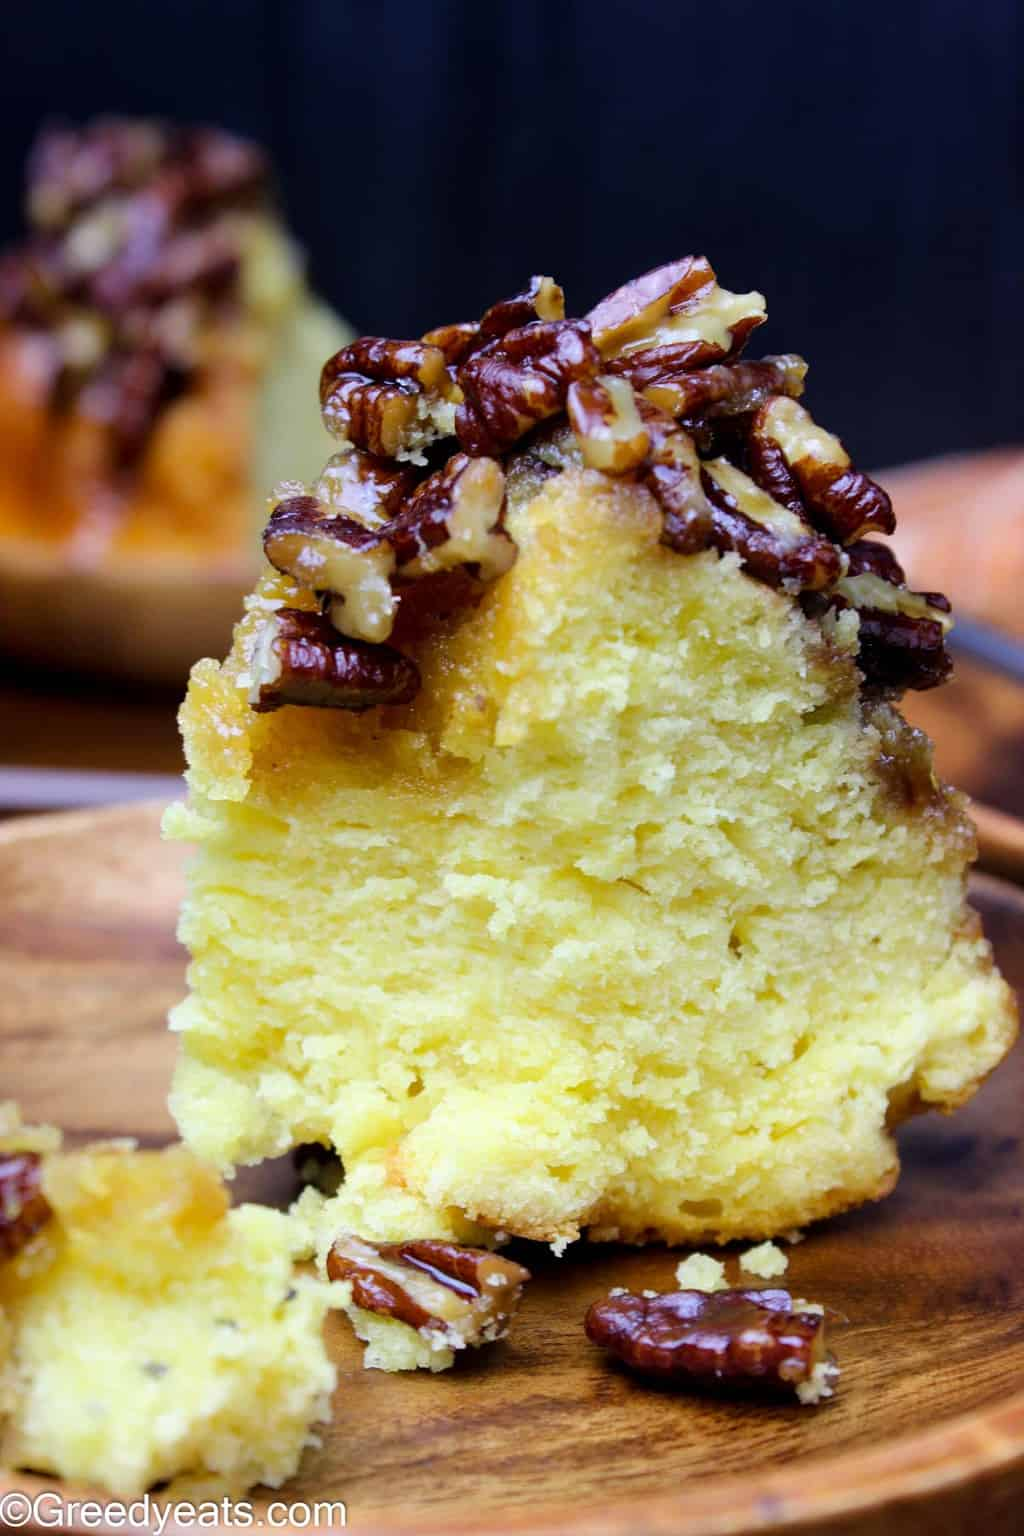 With a thick pecan pie filling, this Pecan pie bundt cake is the best Thanksgiving cake around!